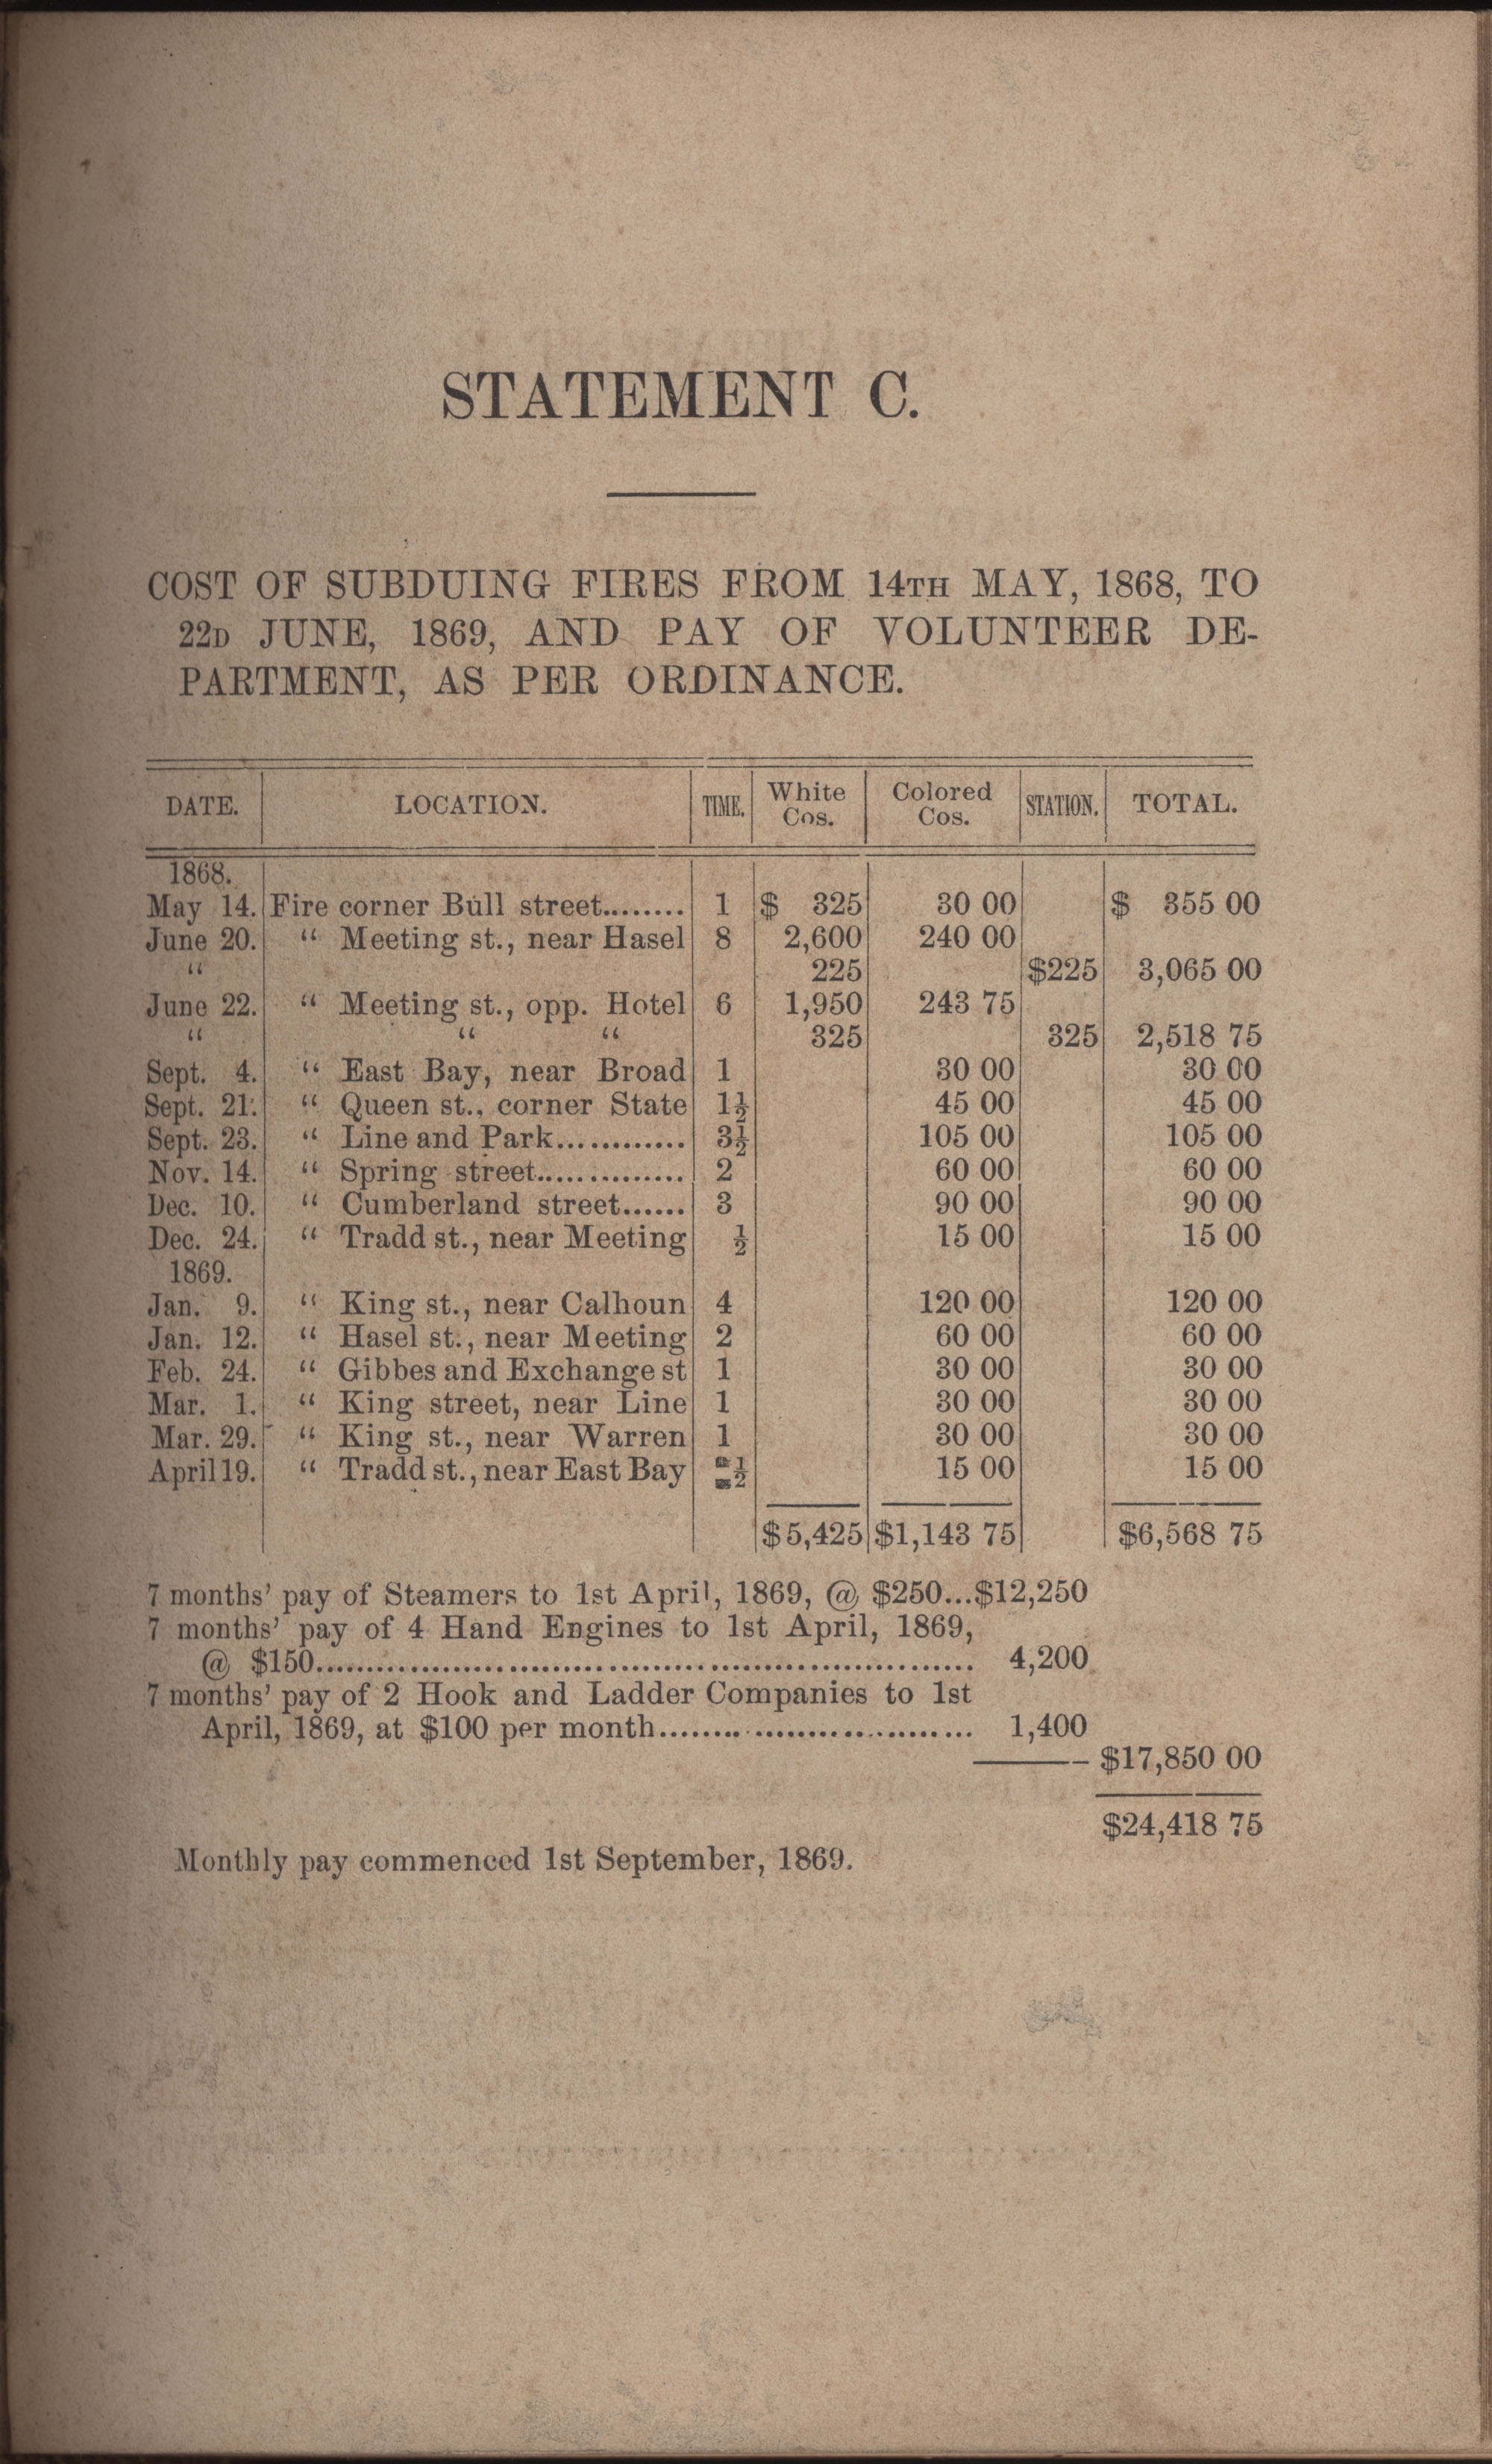 Annual Report of the Chief of the Fire Department of the City of Charleston, page 256